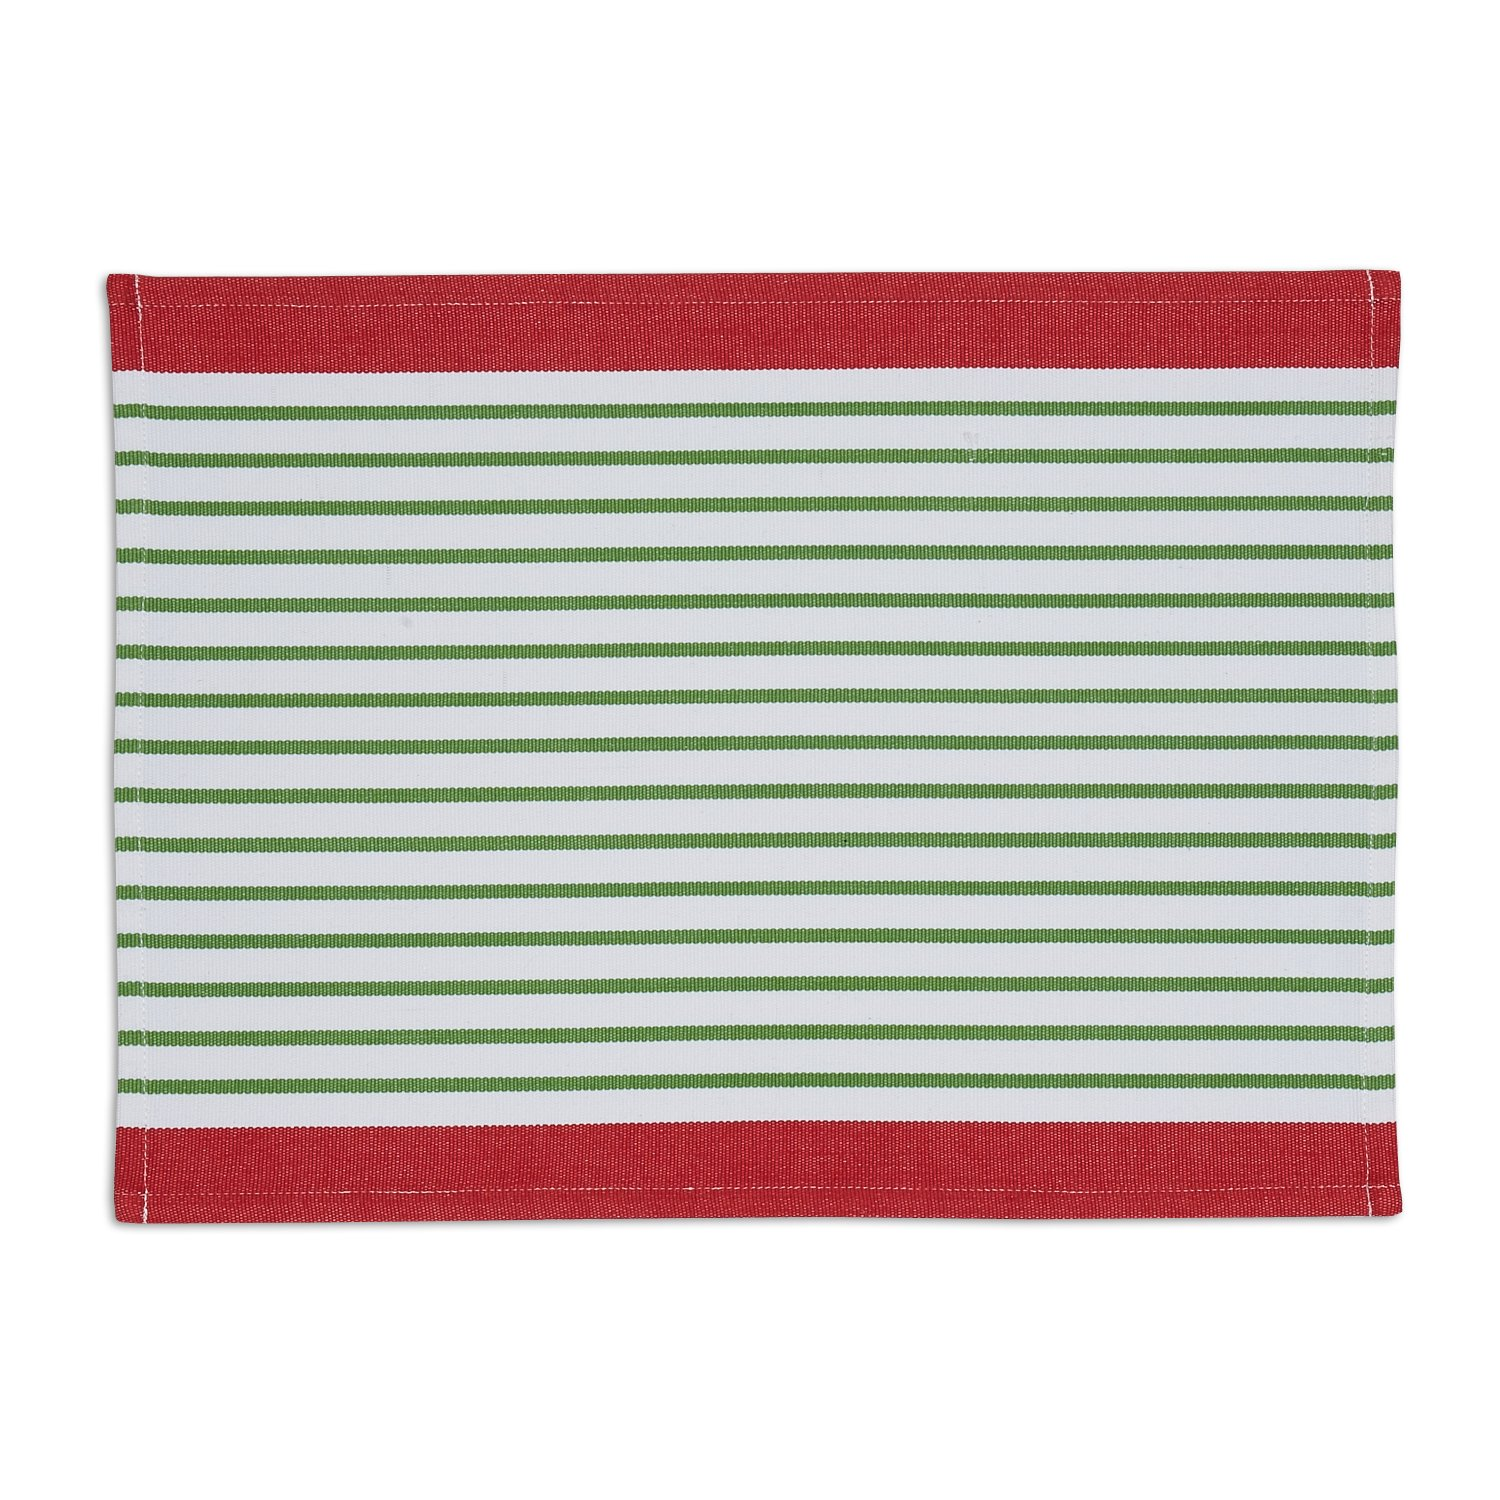 DII Washable Ribbed Cotton Placemat, Set of 6, Pine Needle Stripe - Perfect for Fall, Dinner Parties, BBQs, Christmas, Weddings and Everyday Use